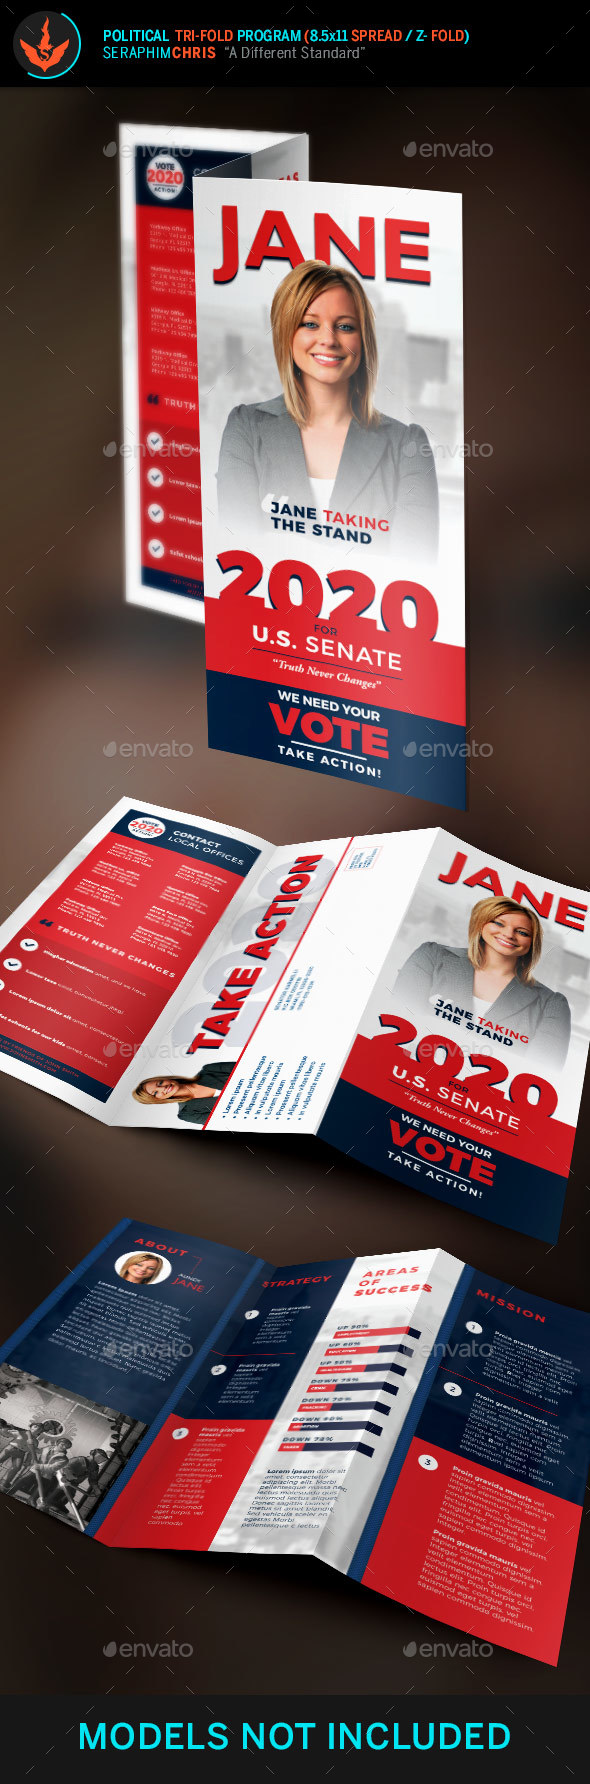 Jane Political Tri-Fold Brochure Template 1 - Corporate Brochures